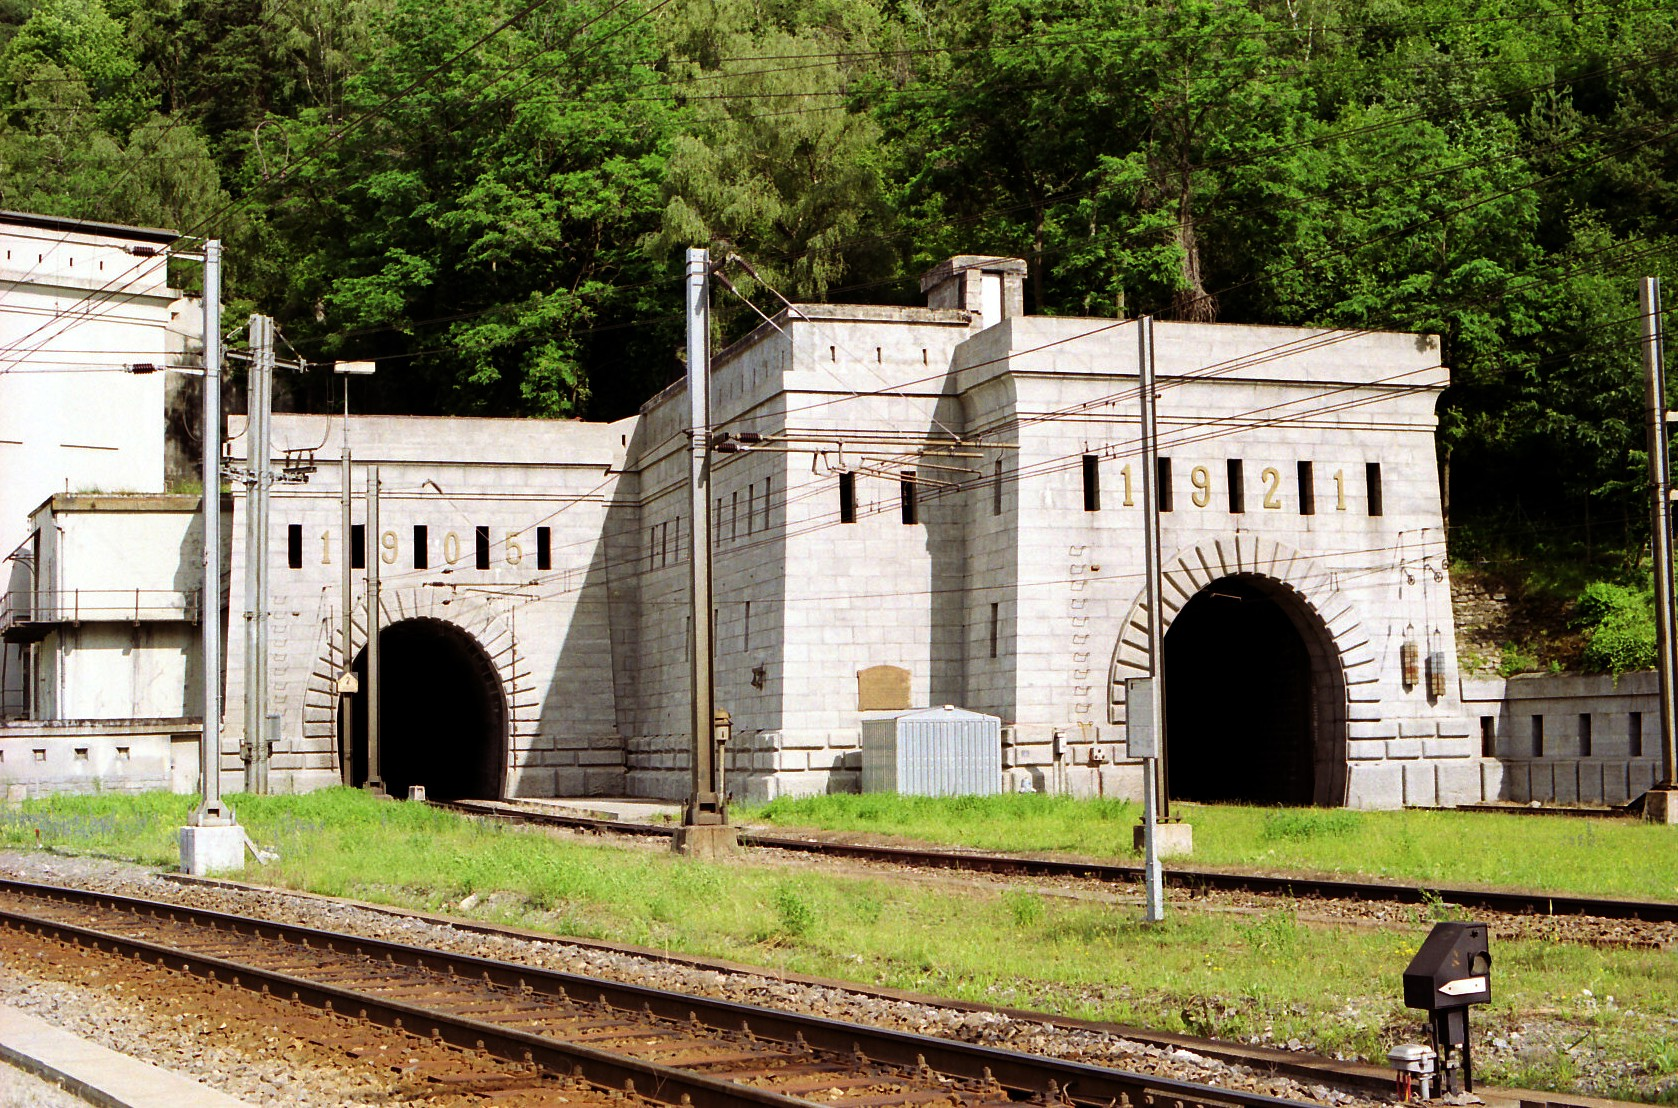 http://upload.wikimedia.org/wikipedia/commons/a/ae/Simplon_railway_tunnel_entrance_switzerland.jpg